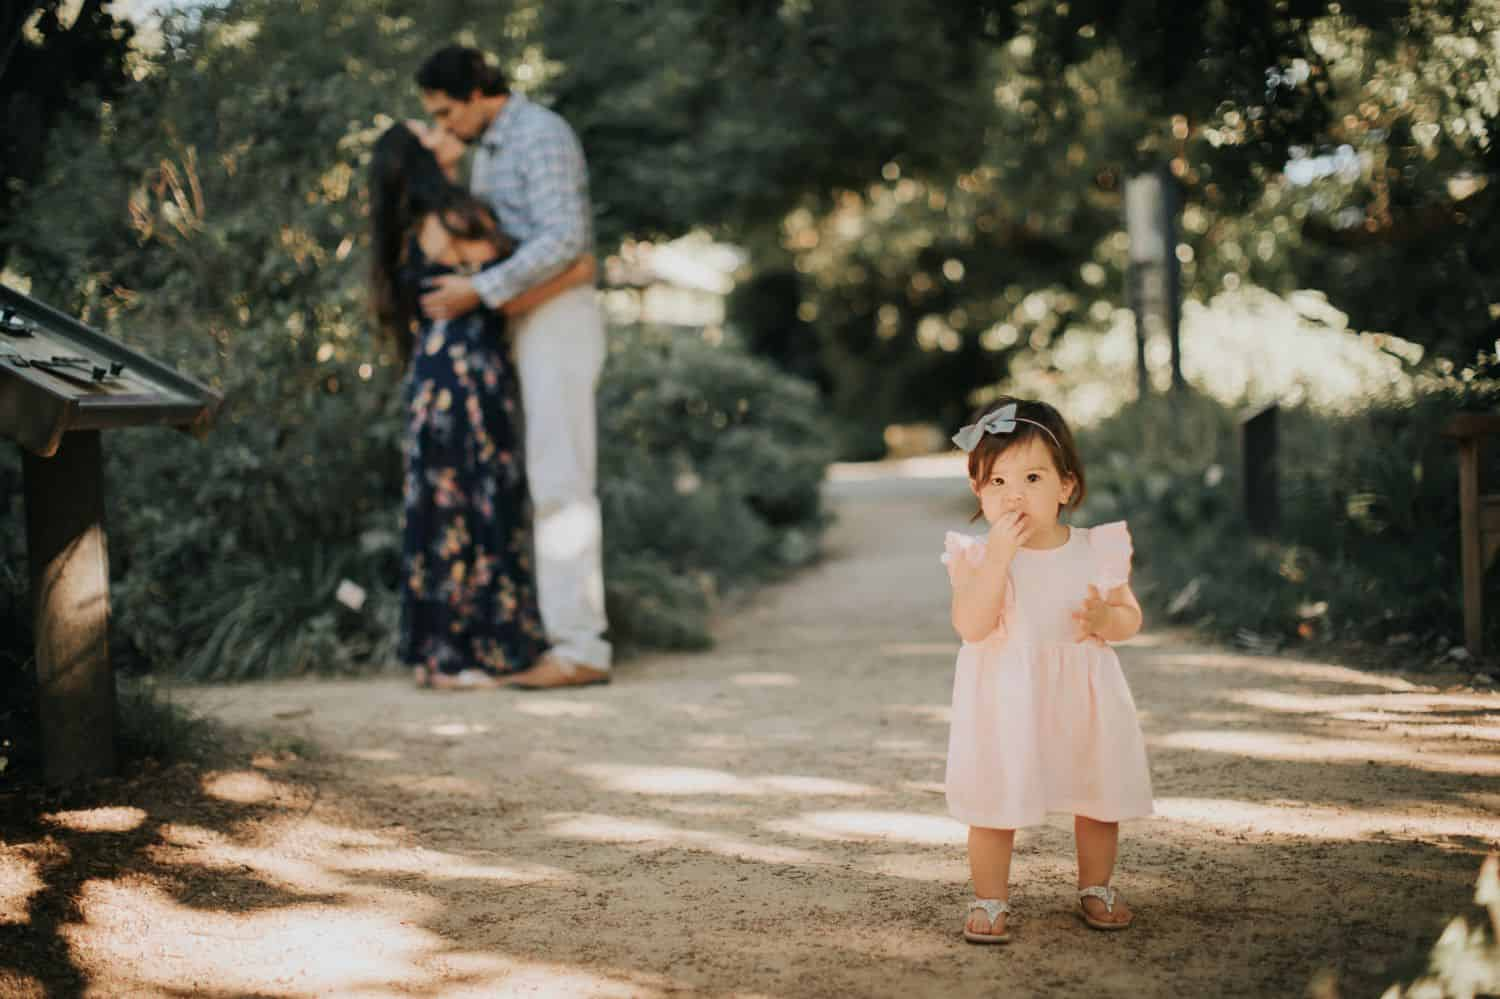 Two parents kiss in the background. In the foreground, their toddler daughter stands in a pink dress looking solemnly at the camera.